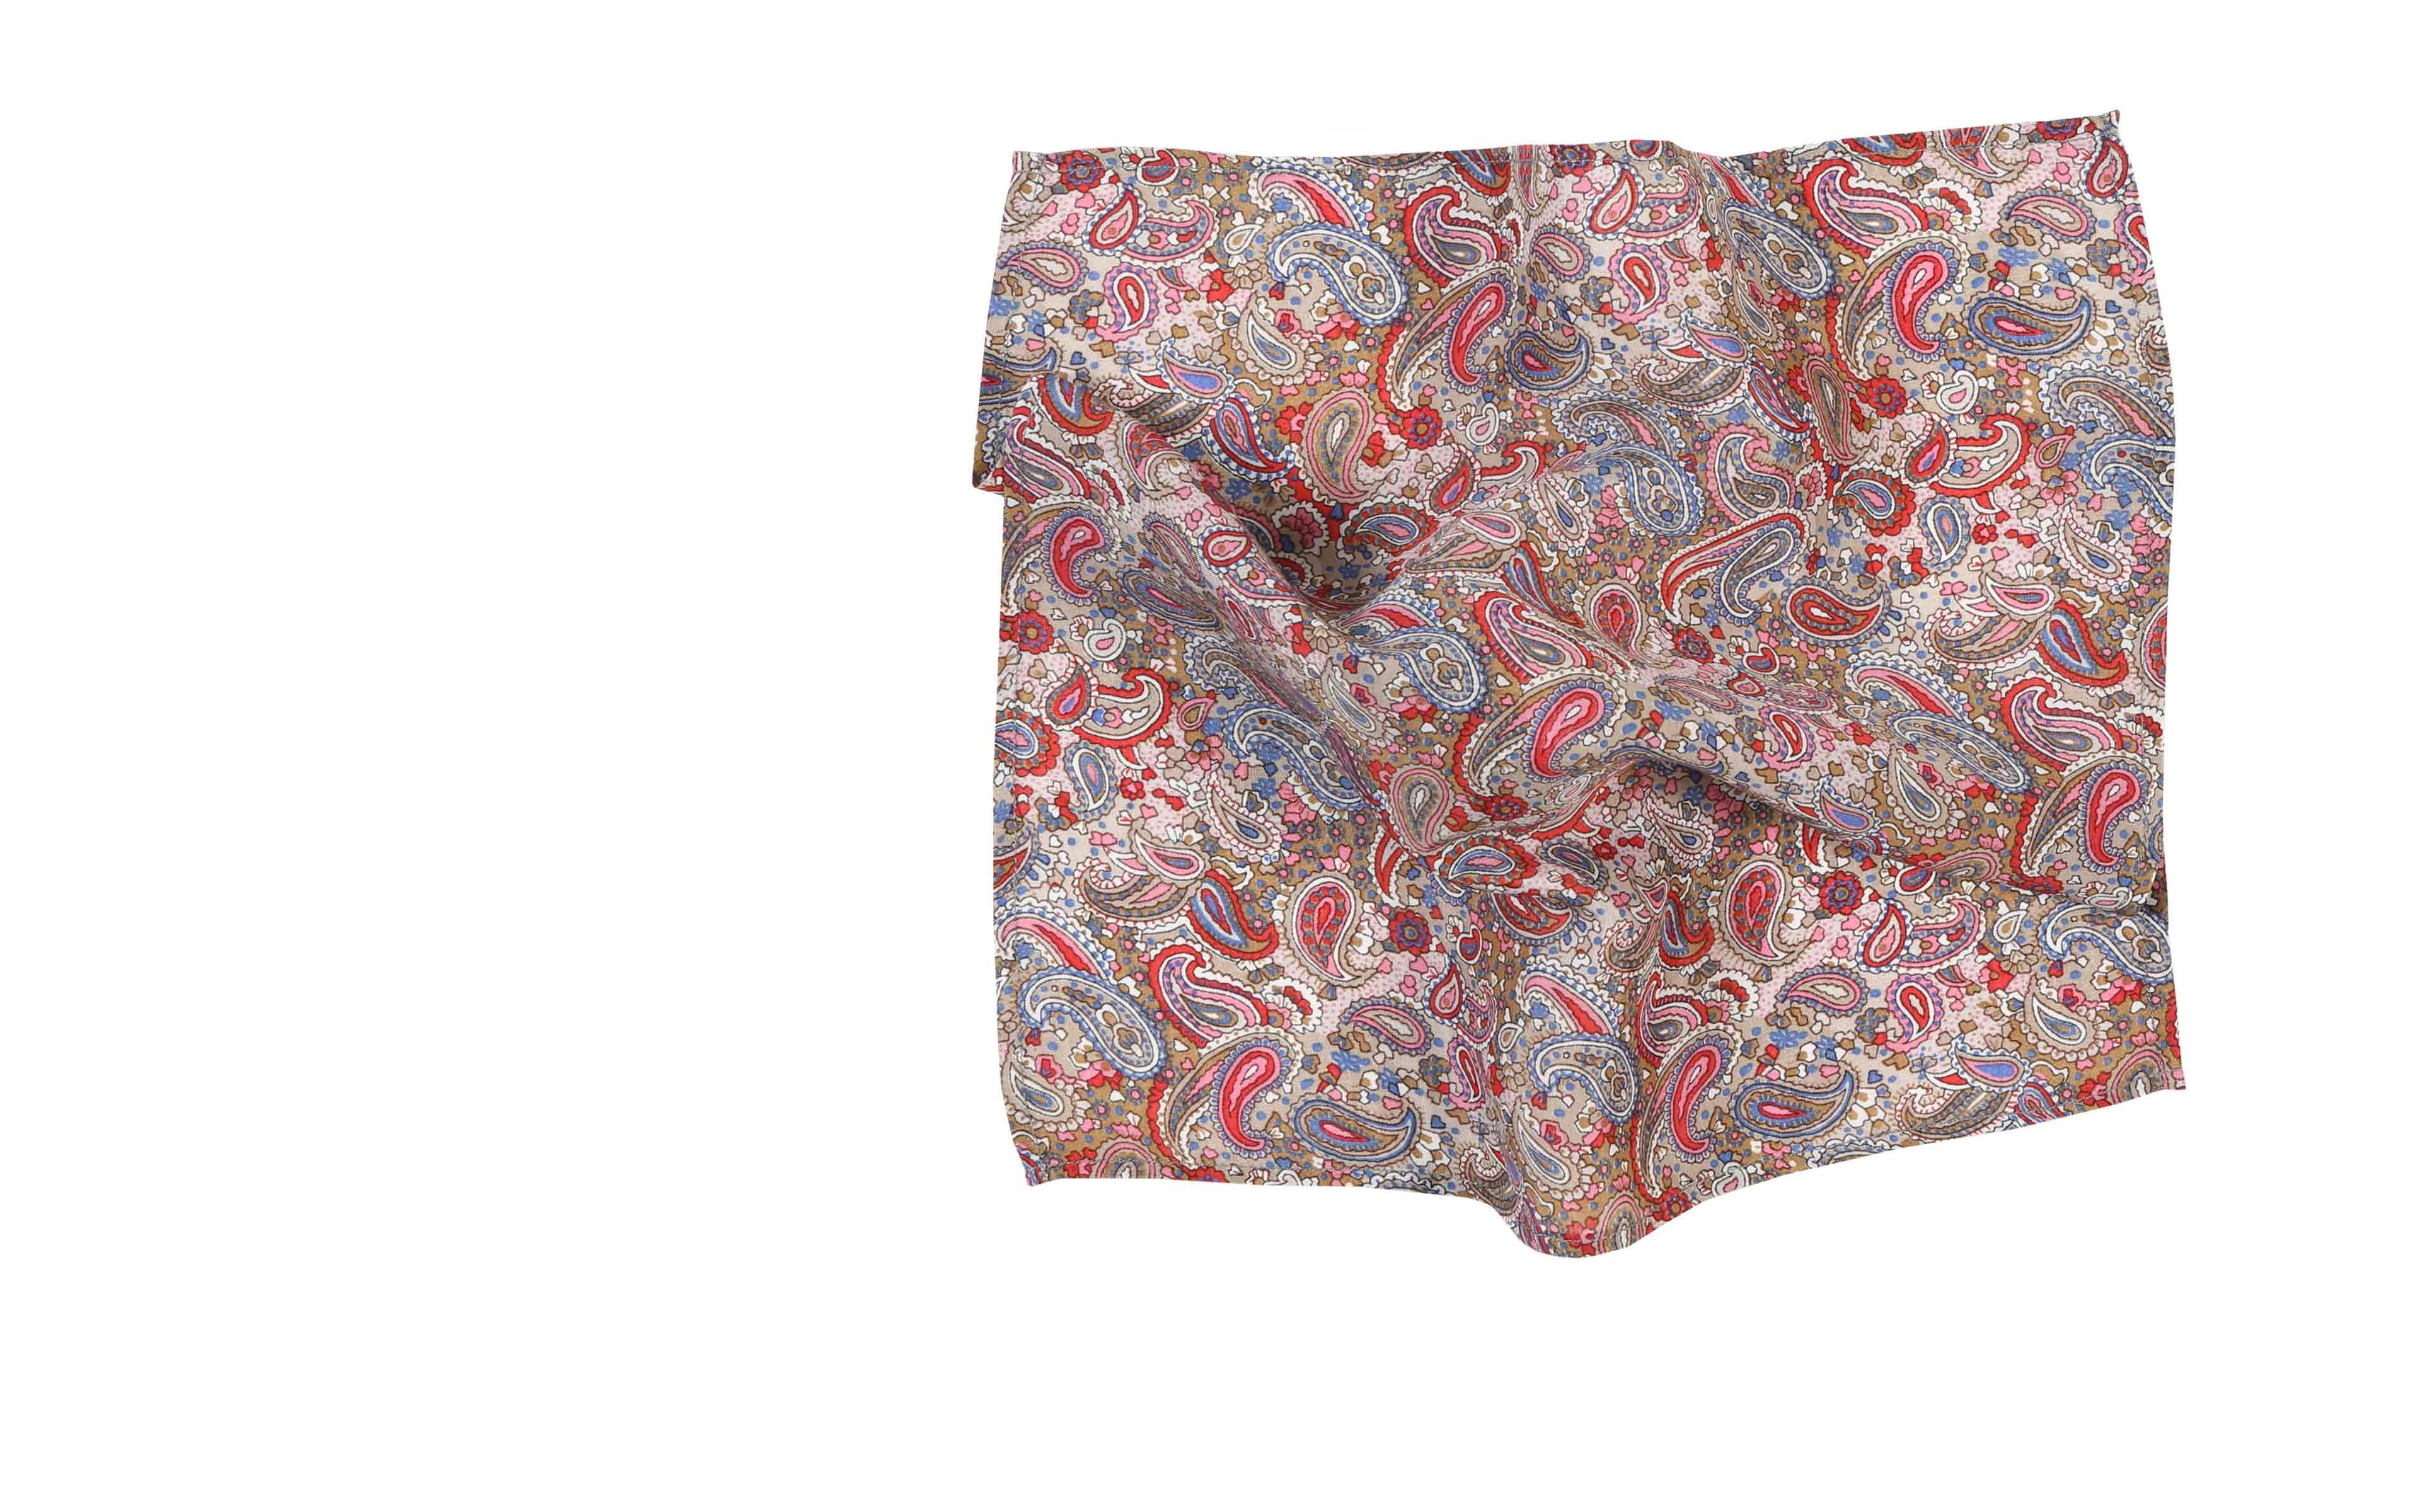 Red Paisley Patterned Cotton & Rayon Pocket Square